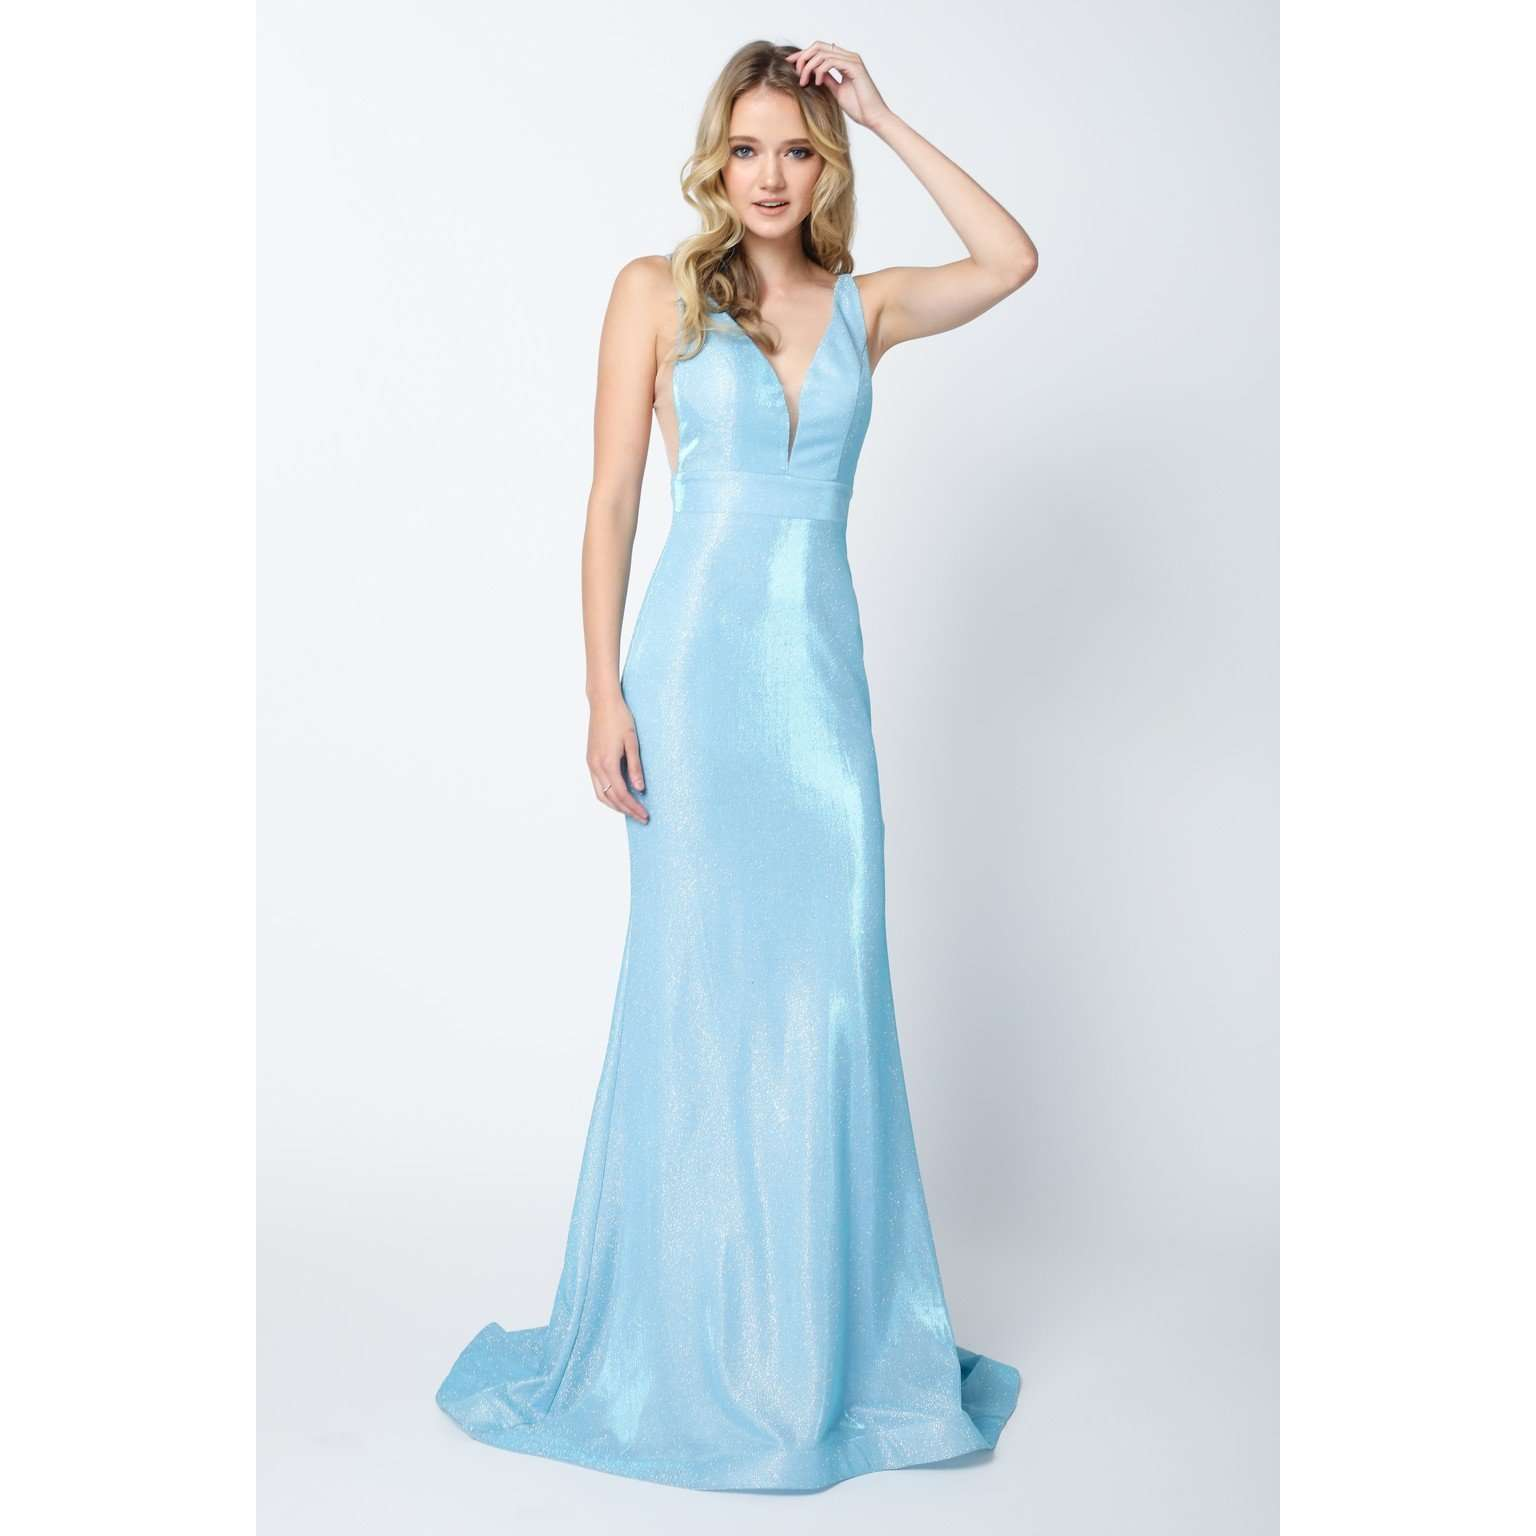 Glitter Mermaid Dress with Plunging Deep-V Neckline Dress 695 - Julietdresses